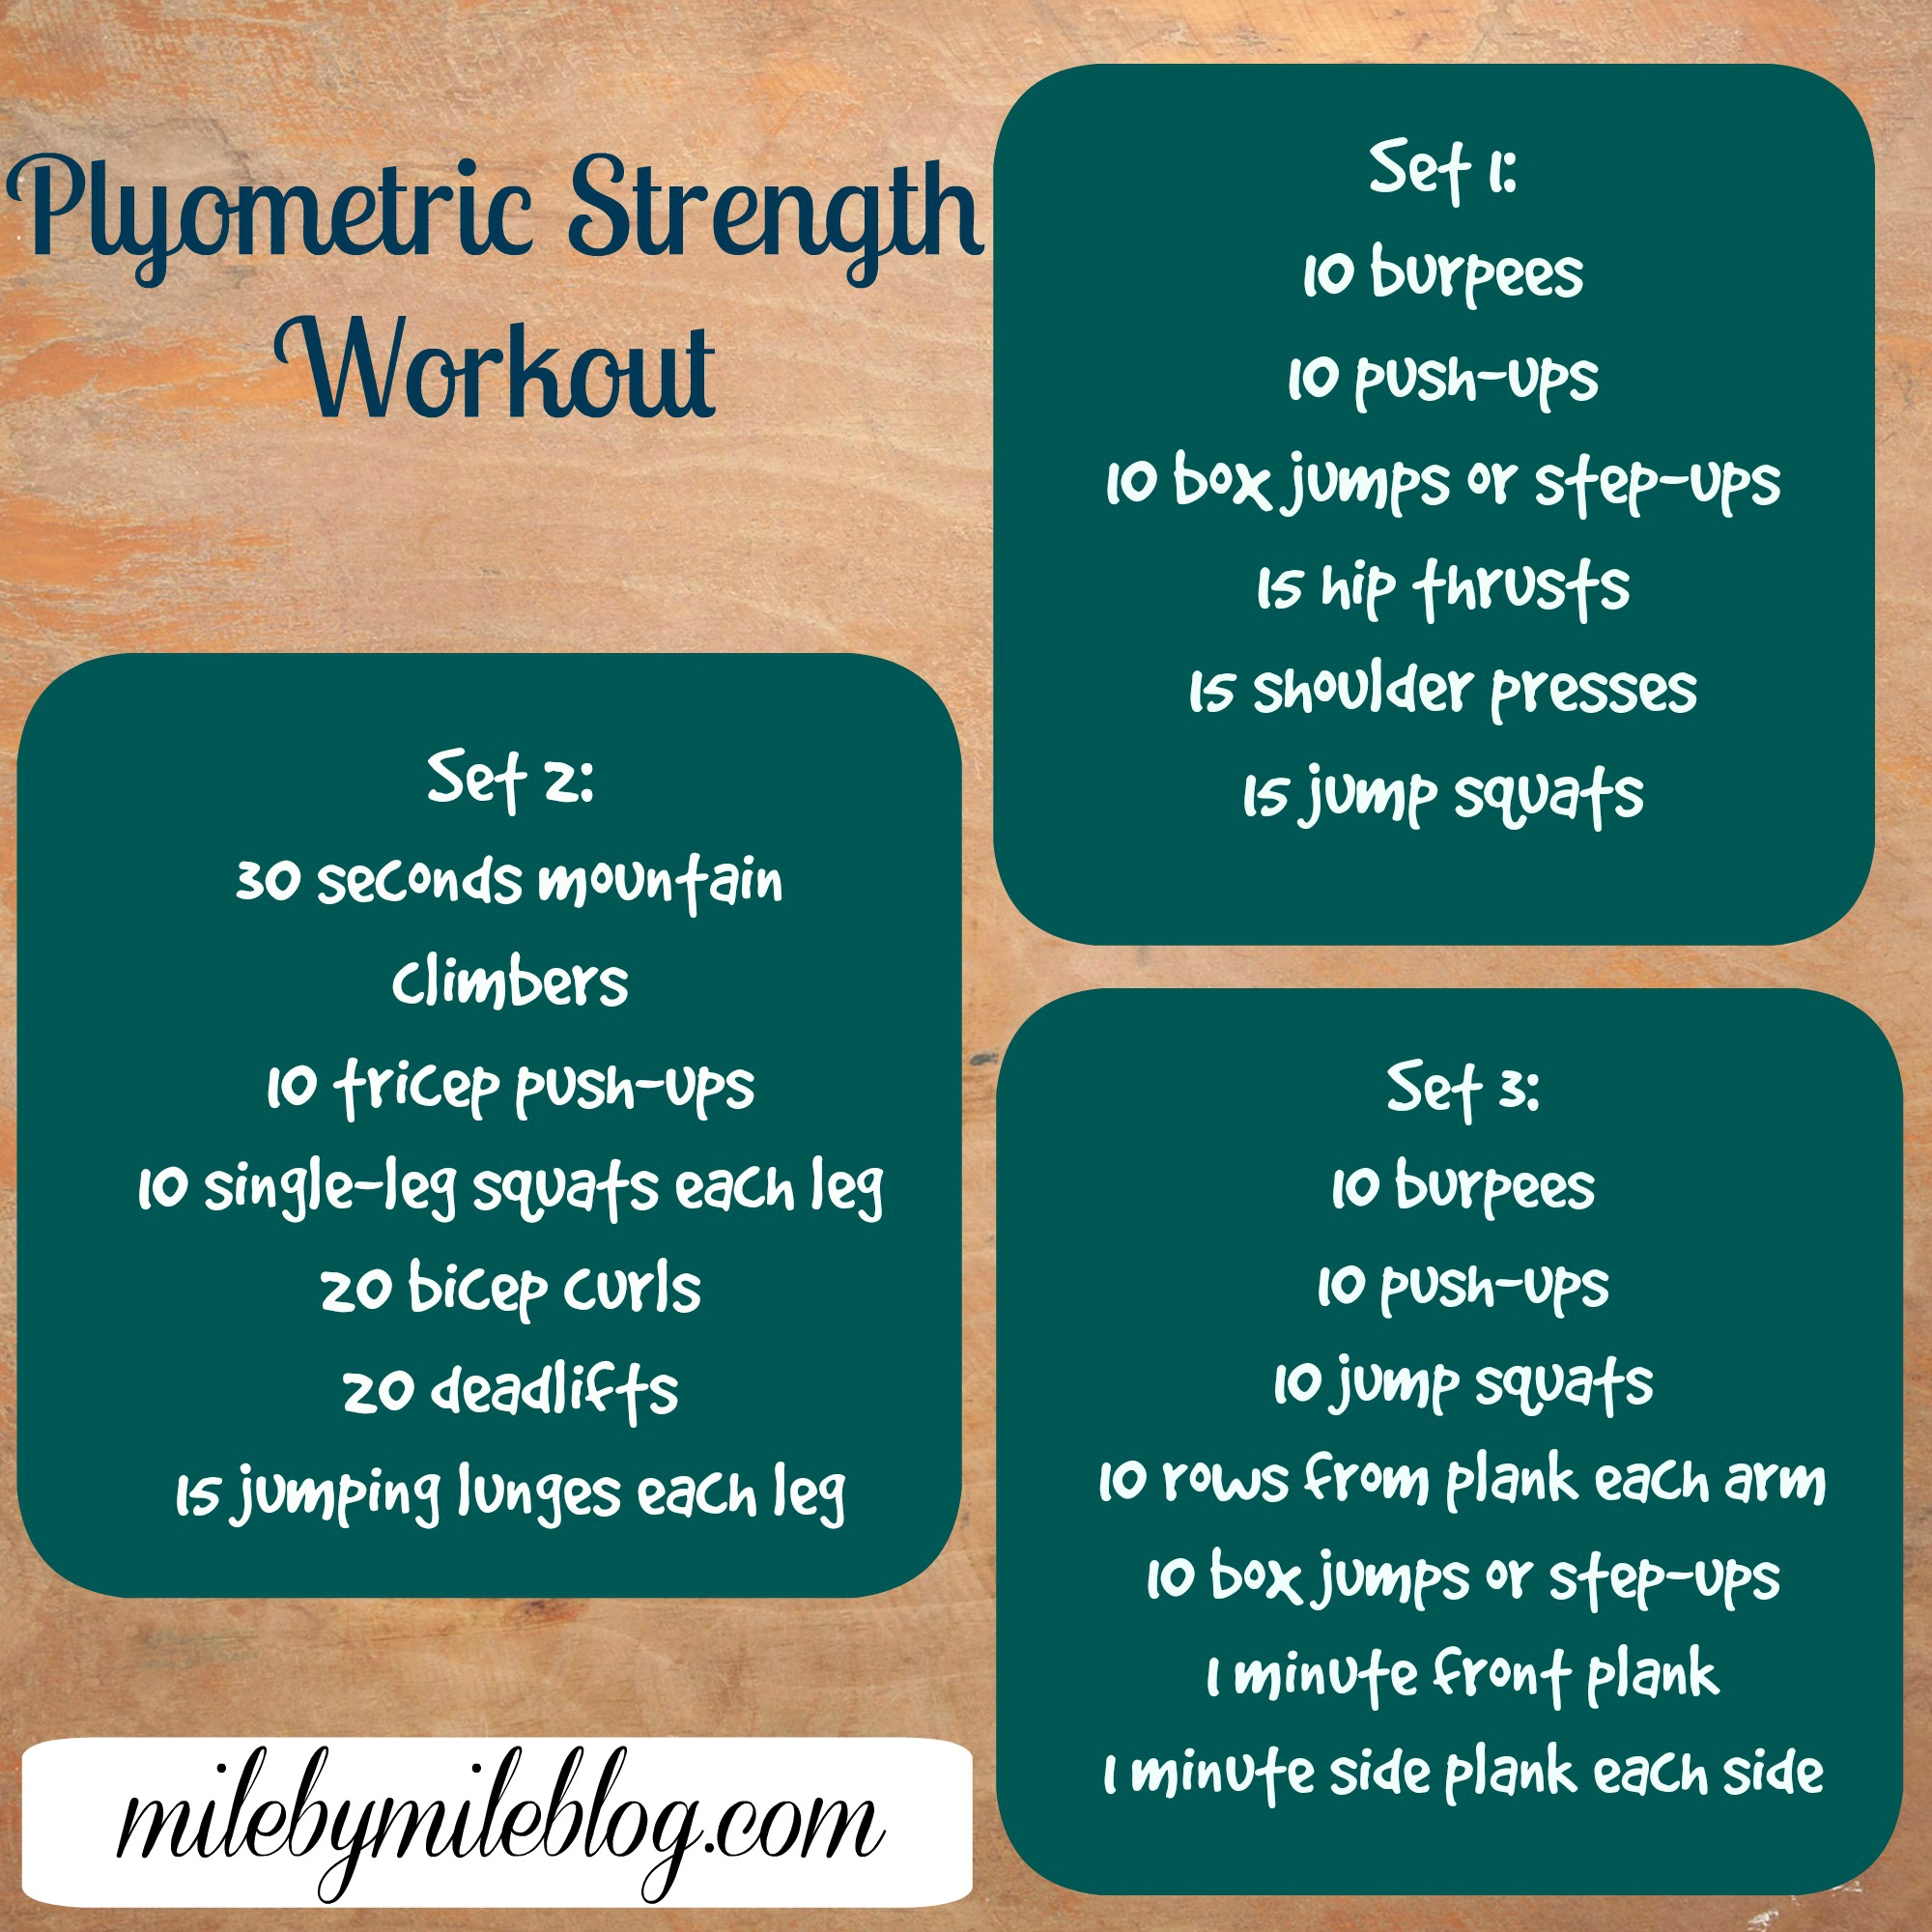 Plyometric Strength Workout And Supplemental Exercises For